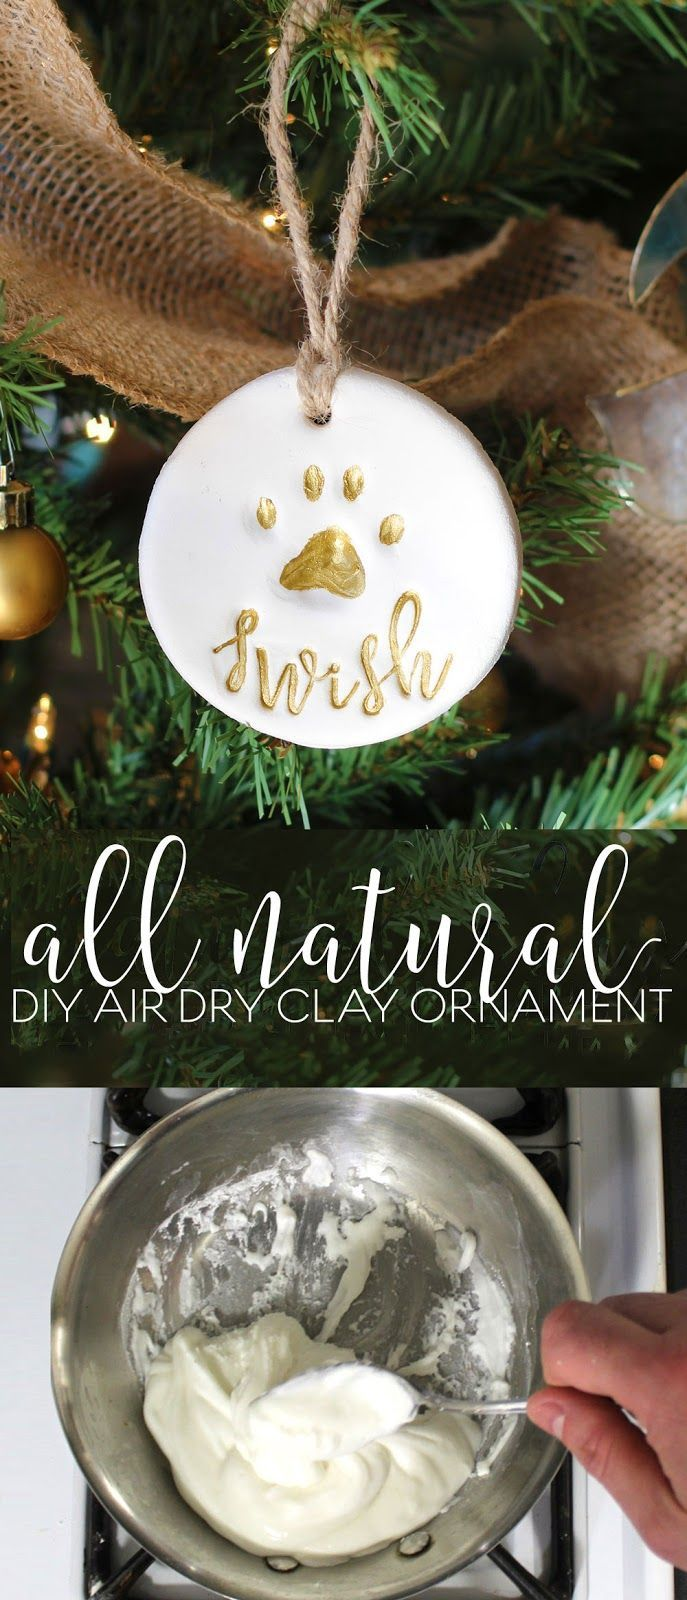 365 Designs Pet Gift Basket With Personalized Natural Diy Air Dry Clay Paw Print Ornament Diy Air Dry Clay Paw Print Ornament Pet Gift Basket